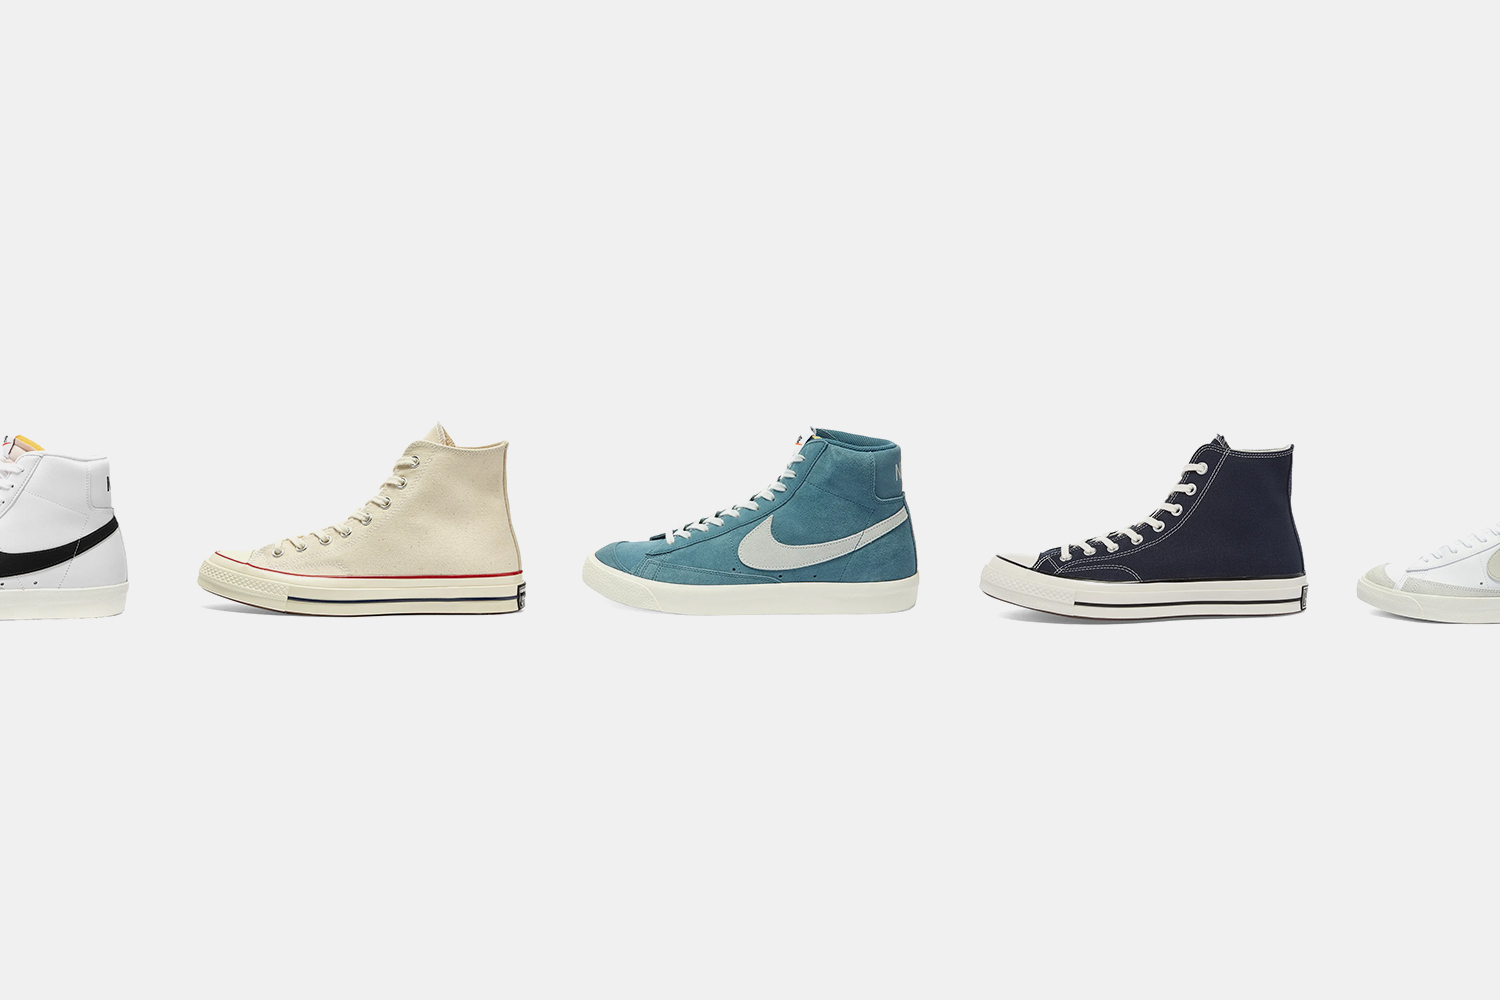 Deal: Get 20% Off These Two Iconic Sneakers